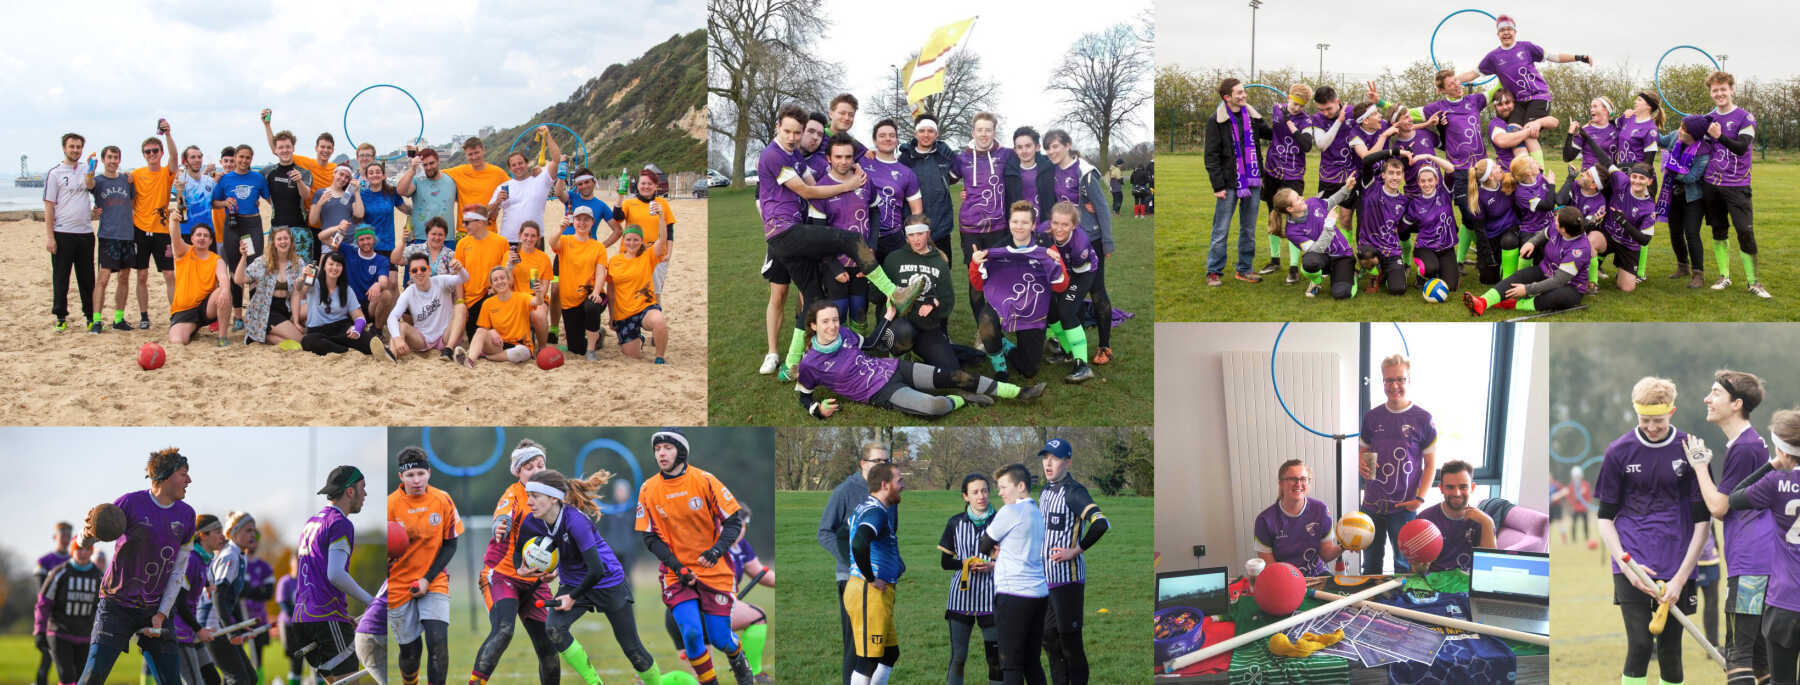 Featured Image for Bournemouth Quidditch Club - West Country Rebels